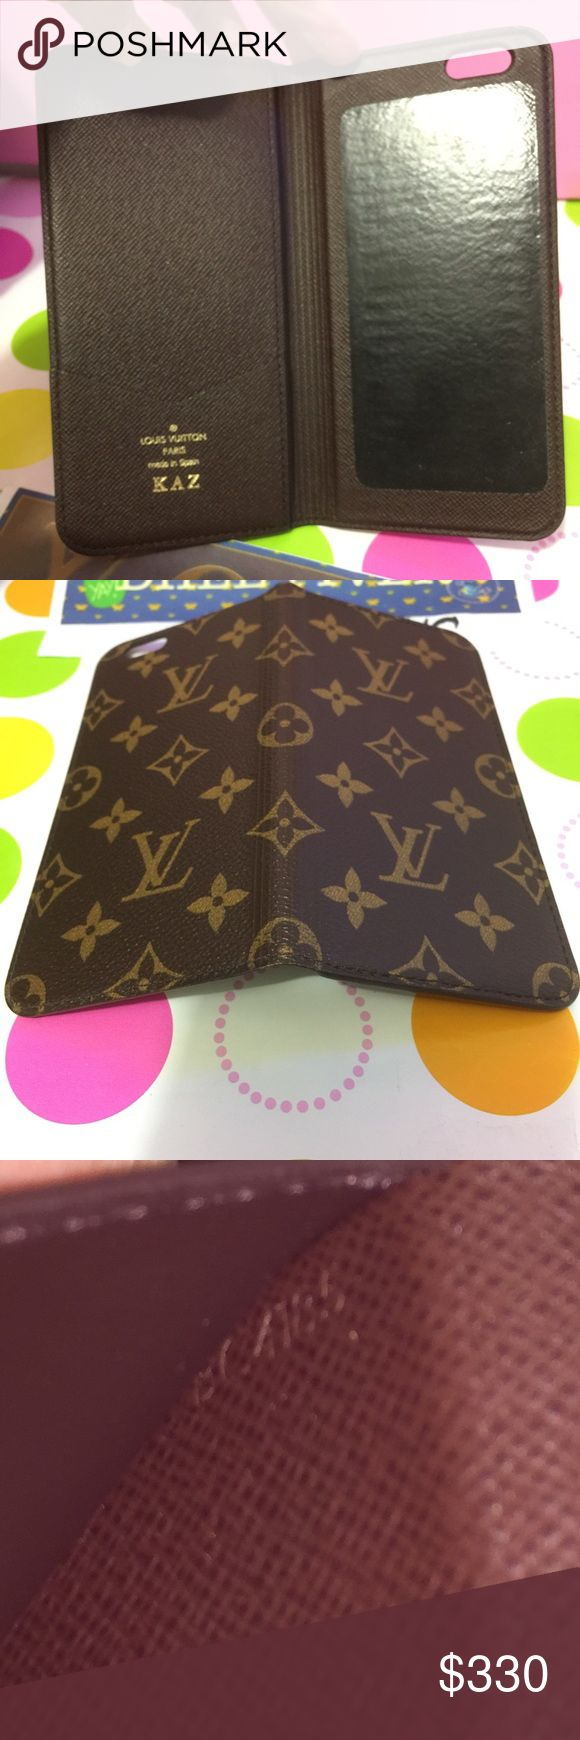 """AUTHENTIC🚨 SOLD ON FB 🚨LV IPHONE 📱 6PLUS IN MON Authentic Louis Vuitton IPHONE 📱 6PLUS in monogram   🚨 FIRM NO HOLDS 🚨  💝 IPHONE 📱 6PLUS In excellent USED    Condition   💝DATECODE BC 4185 💝 NO MAJOR FLAWS TO SEE   💝 It has Initial in it  """" KAZ """"  INCLUDED- BOX AND Dustbag   please No Receipt 😁 Louis Vuitton Accessories Phone Cases"""